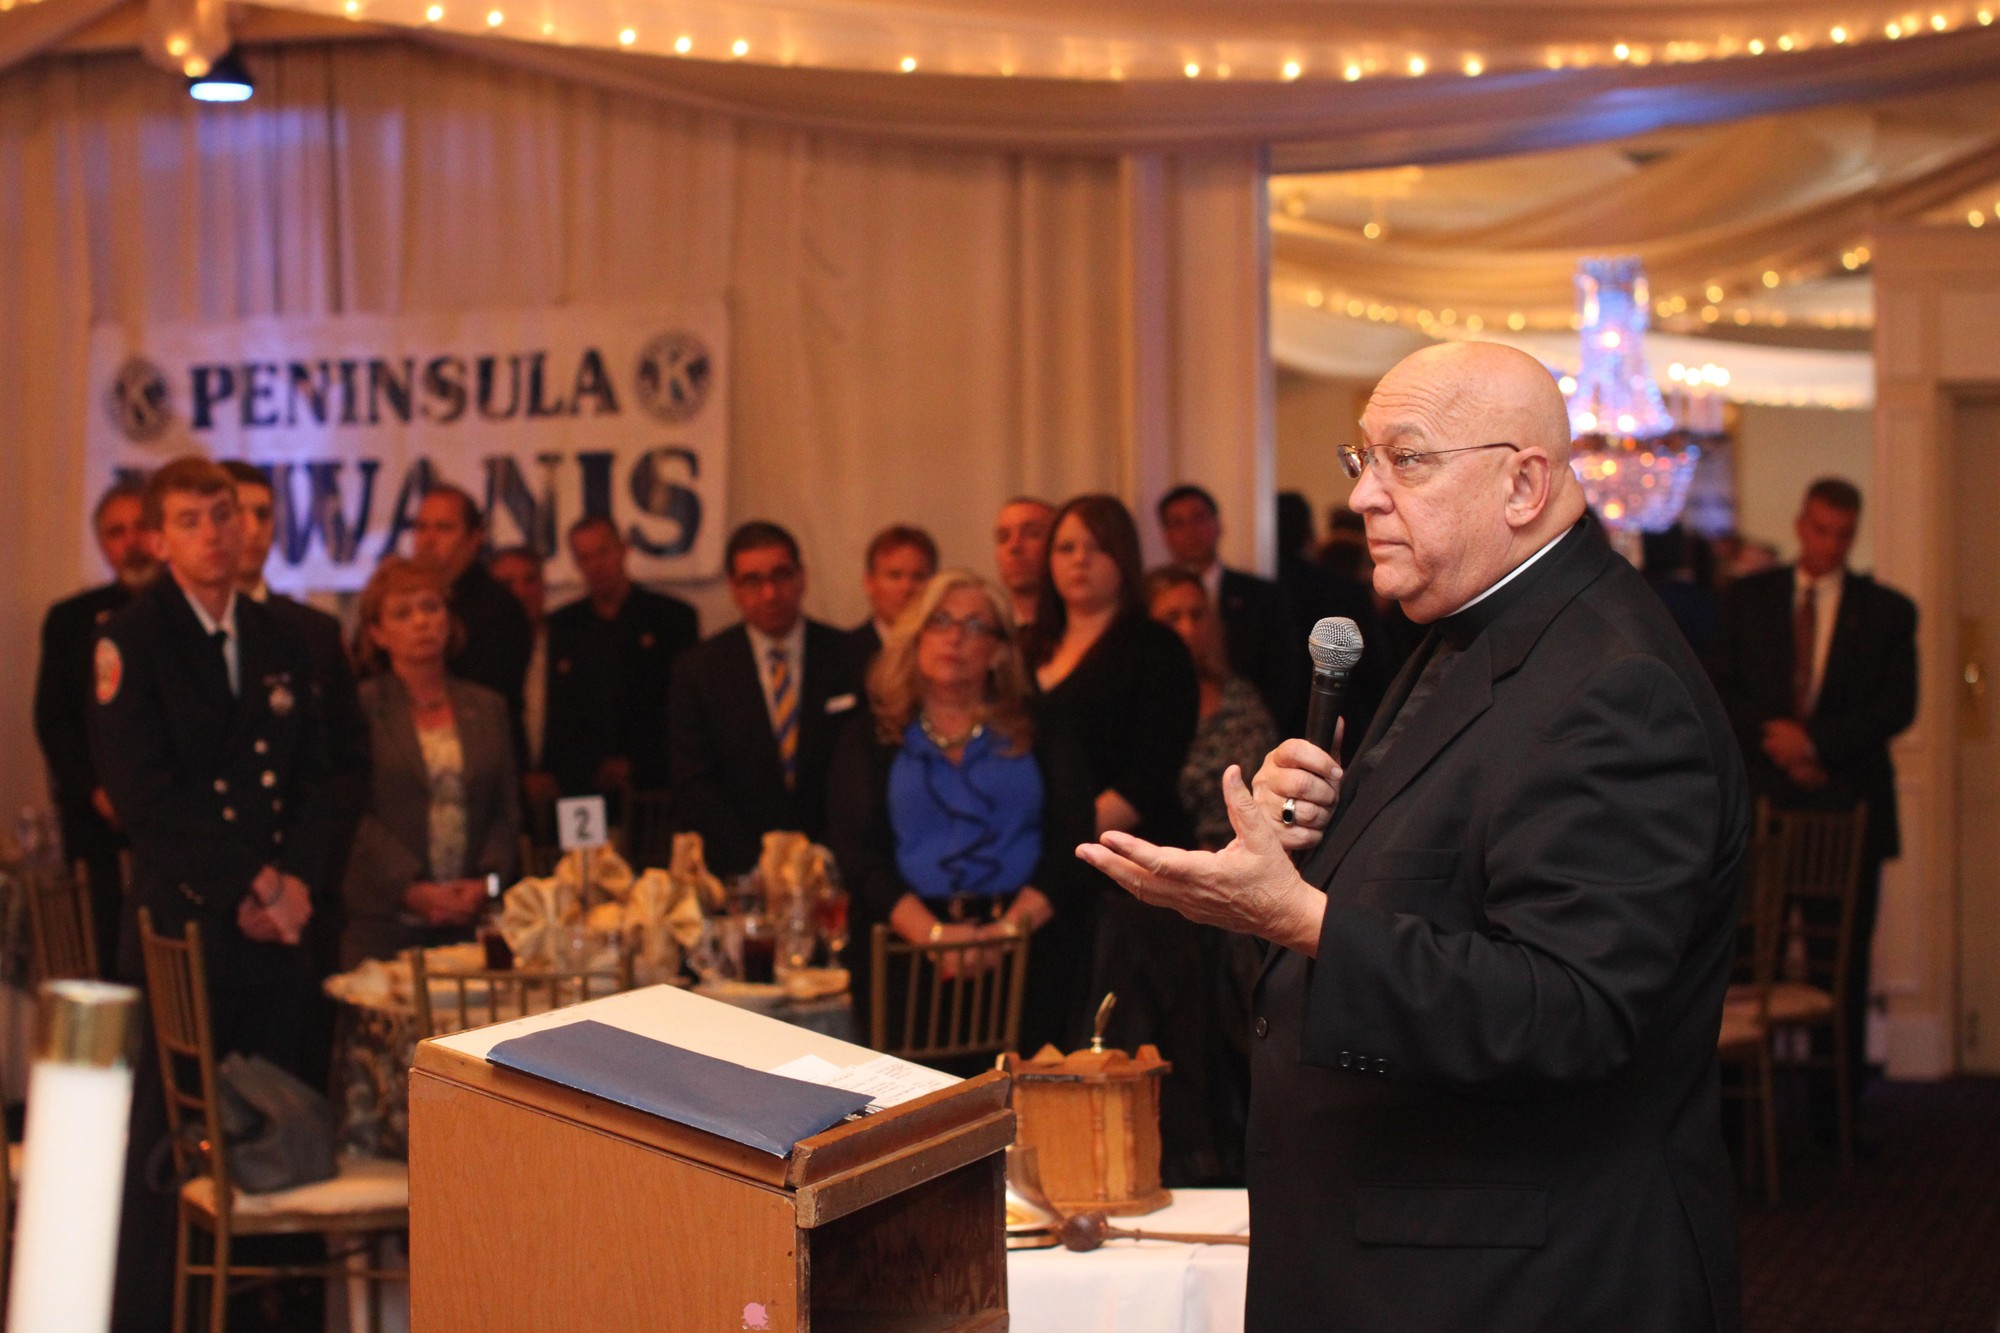 Msgr. Paul Rahilly of St. Joachim R.C. Church of Cedarhurst delivered the invocation at the Peninsula Kiwanis Humanitarian Night.